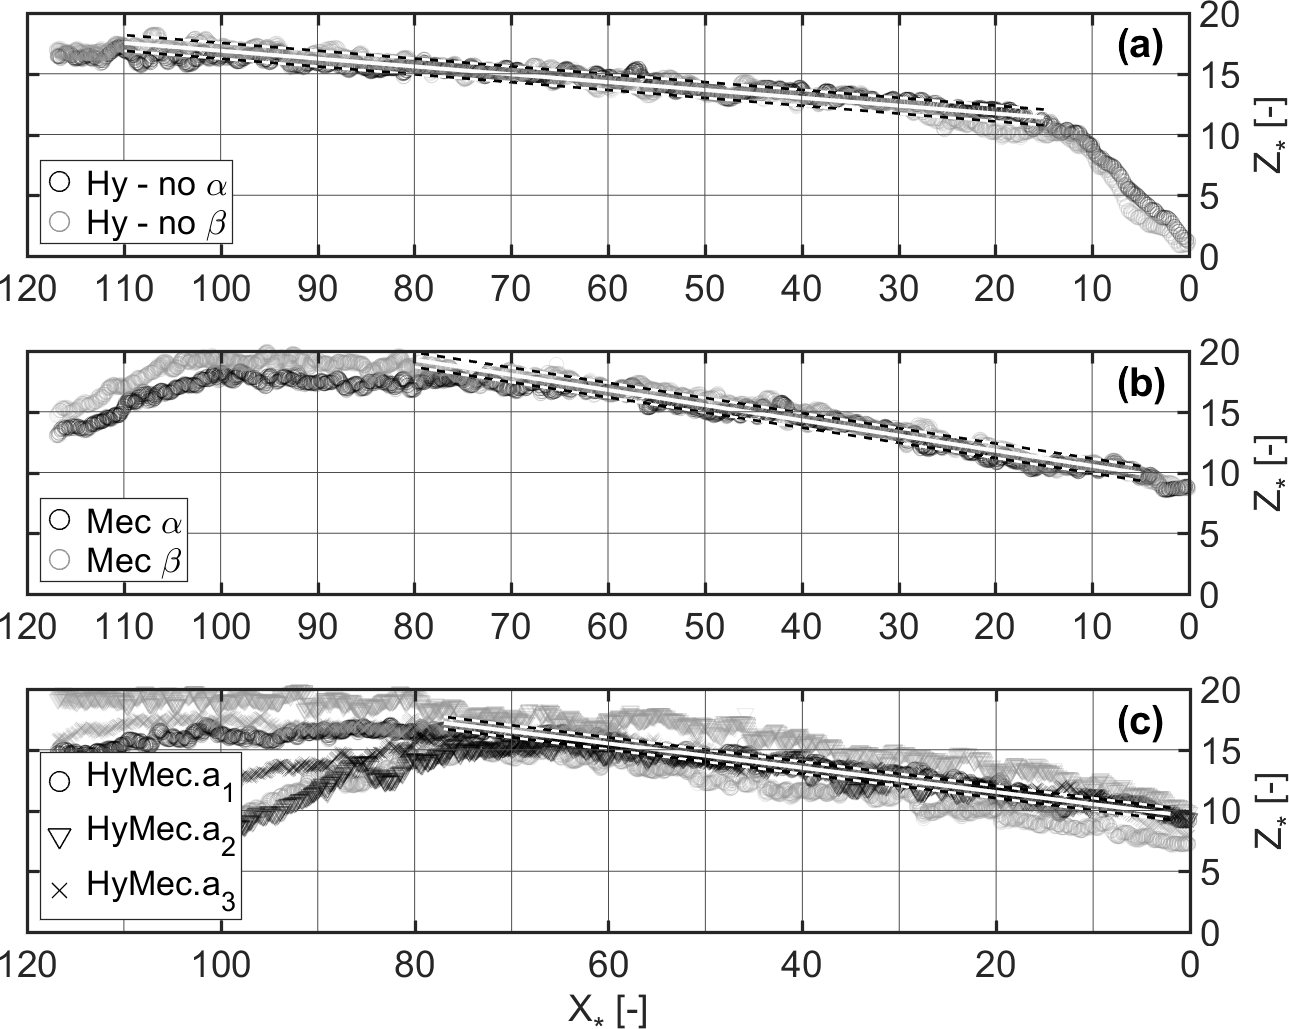 NHESS - Sediment traps with guiding channel and hybrid check